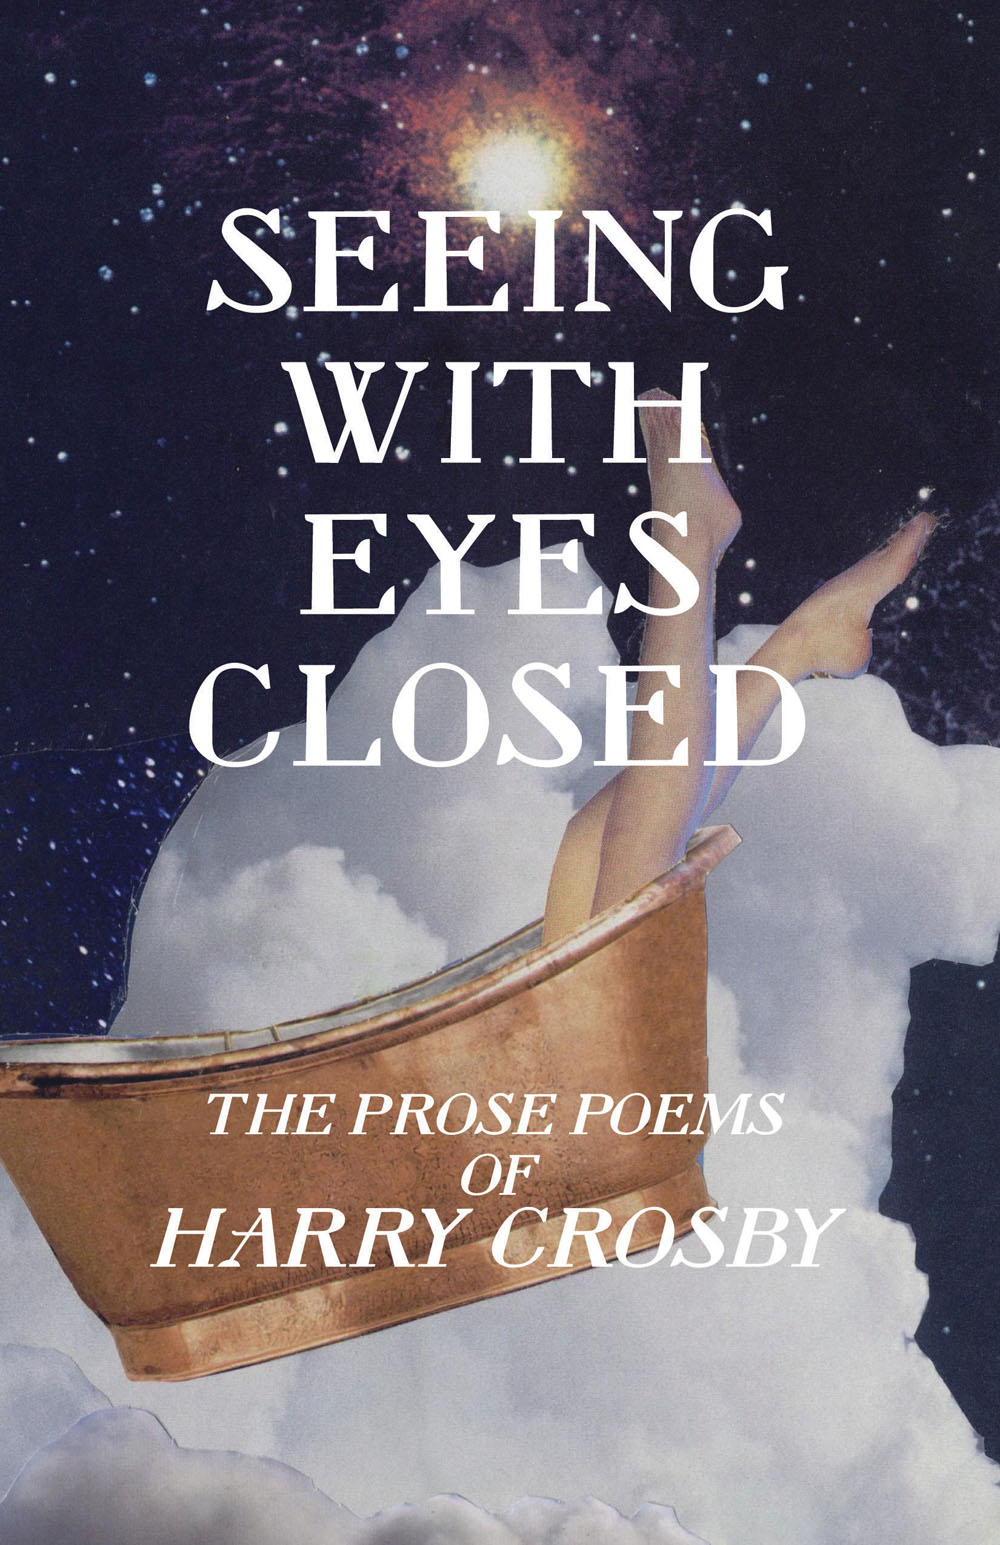 Seeing With Eyes Closed: The Prose Poems of Harry Crosby